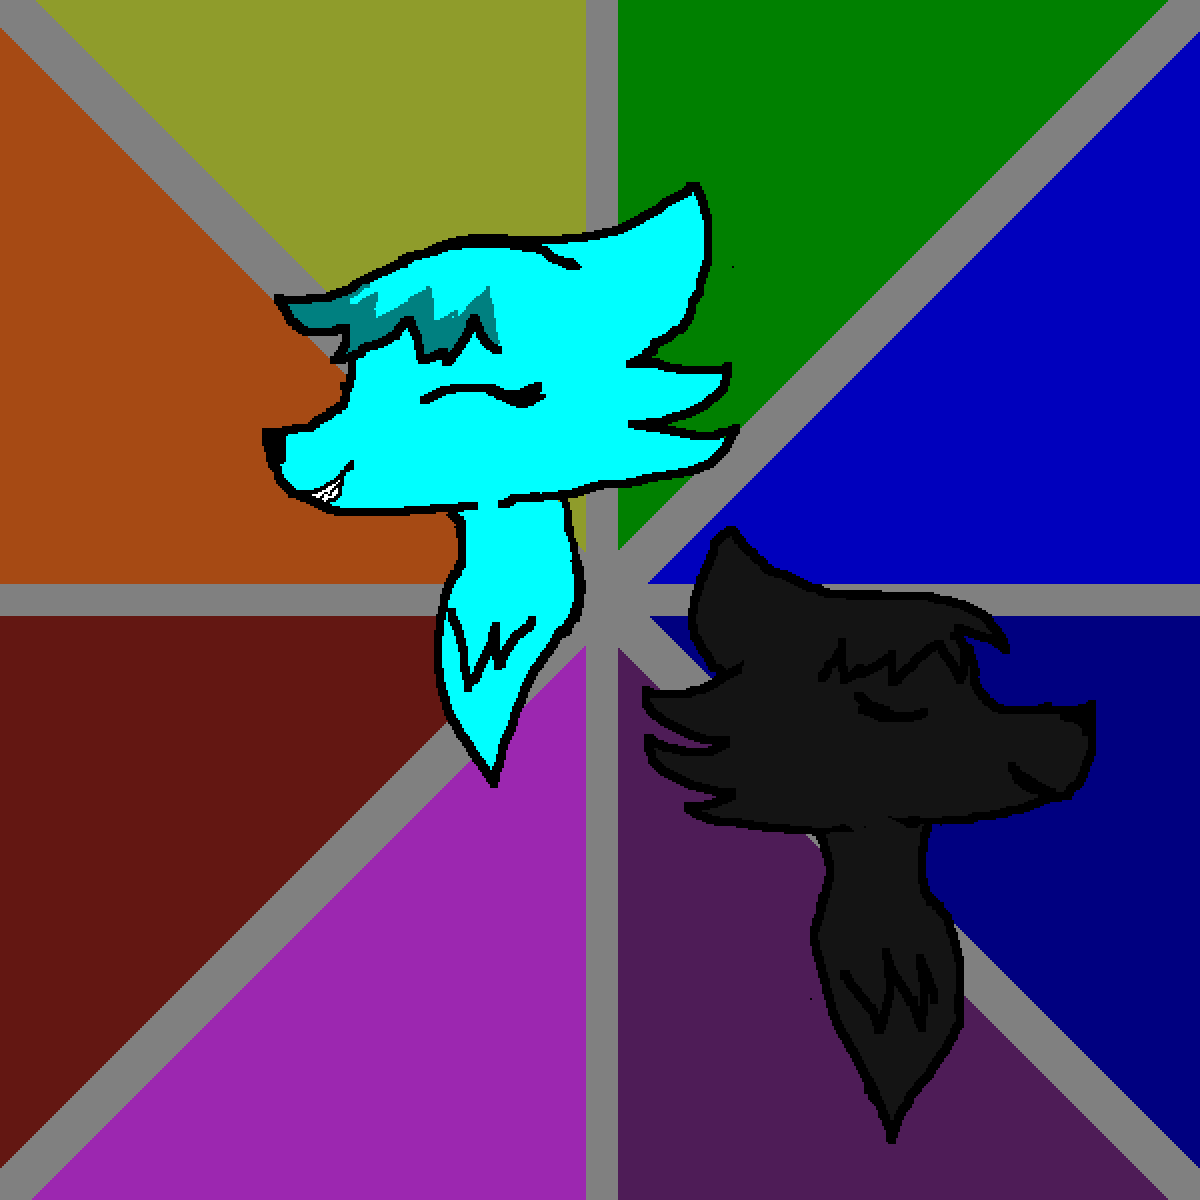 Void(the black one) and Echo(the blue one) by Lill1569